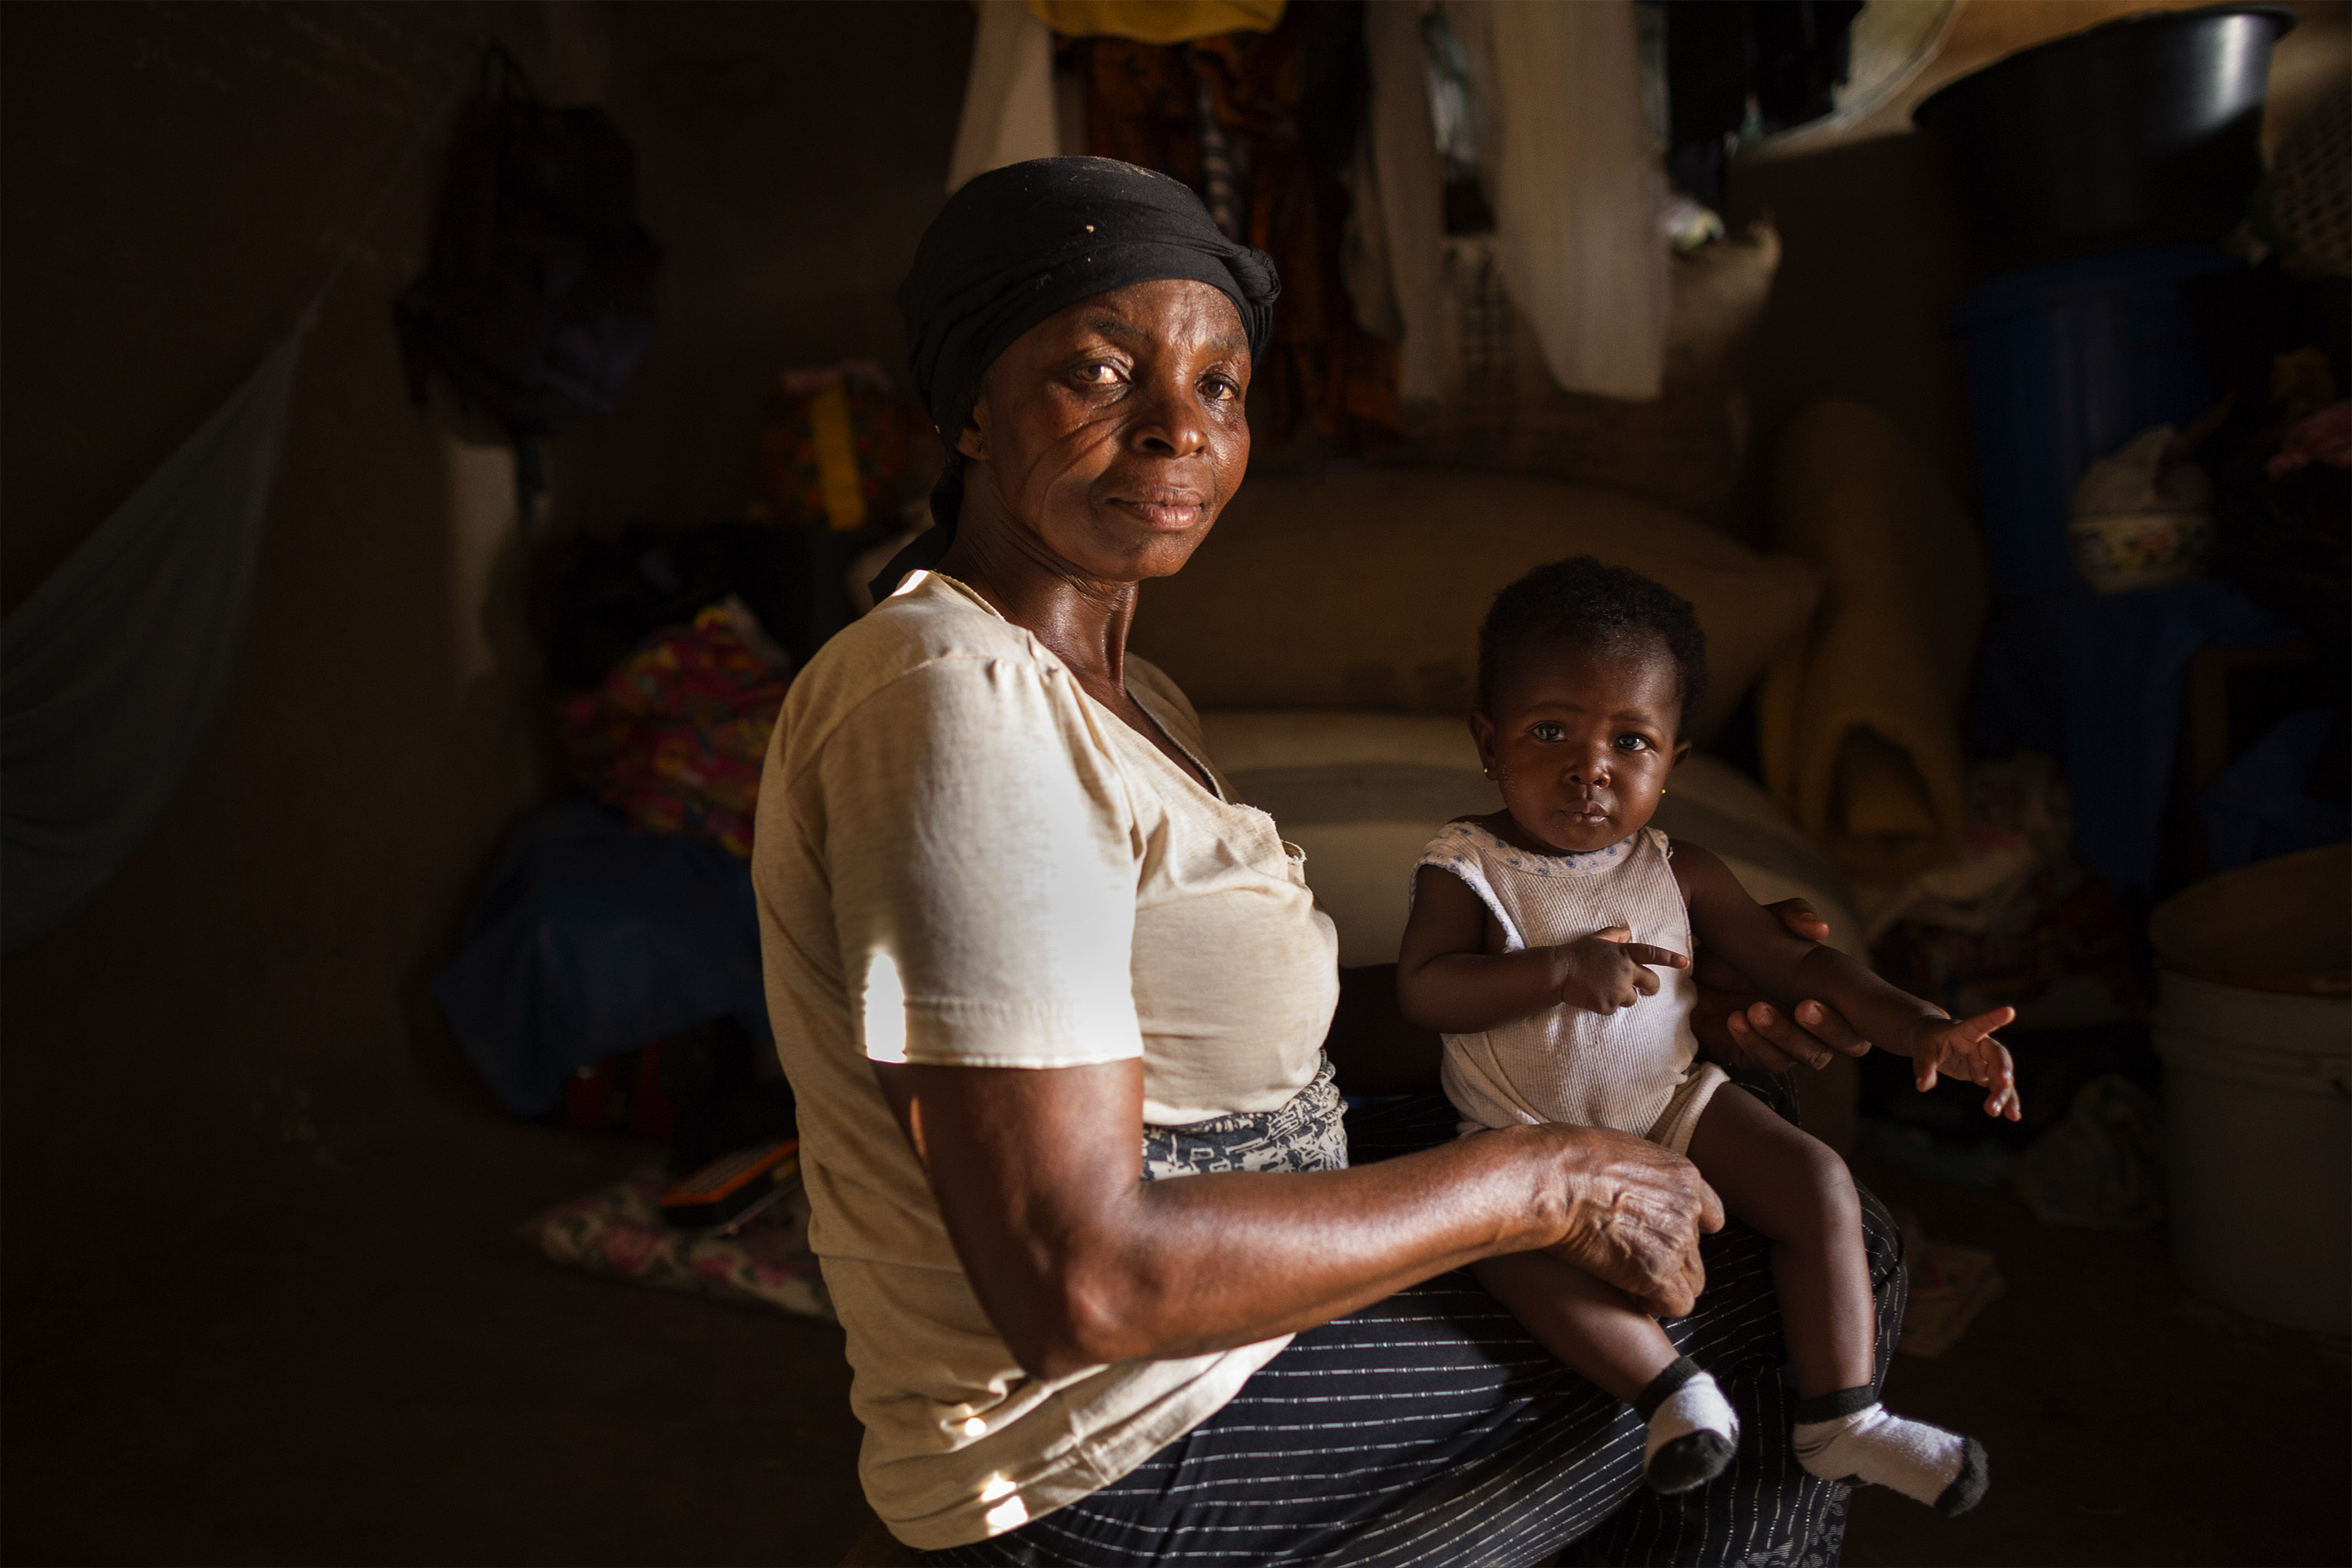 The ability to earn money through farming is Ghana is often limited because of climate change. But women like Rita are using earnings from the CRS' savings groups to start a shea nut butter business. Photo by Jake Lyell for CRS